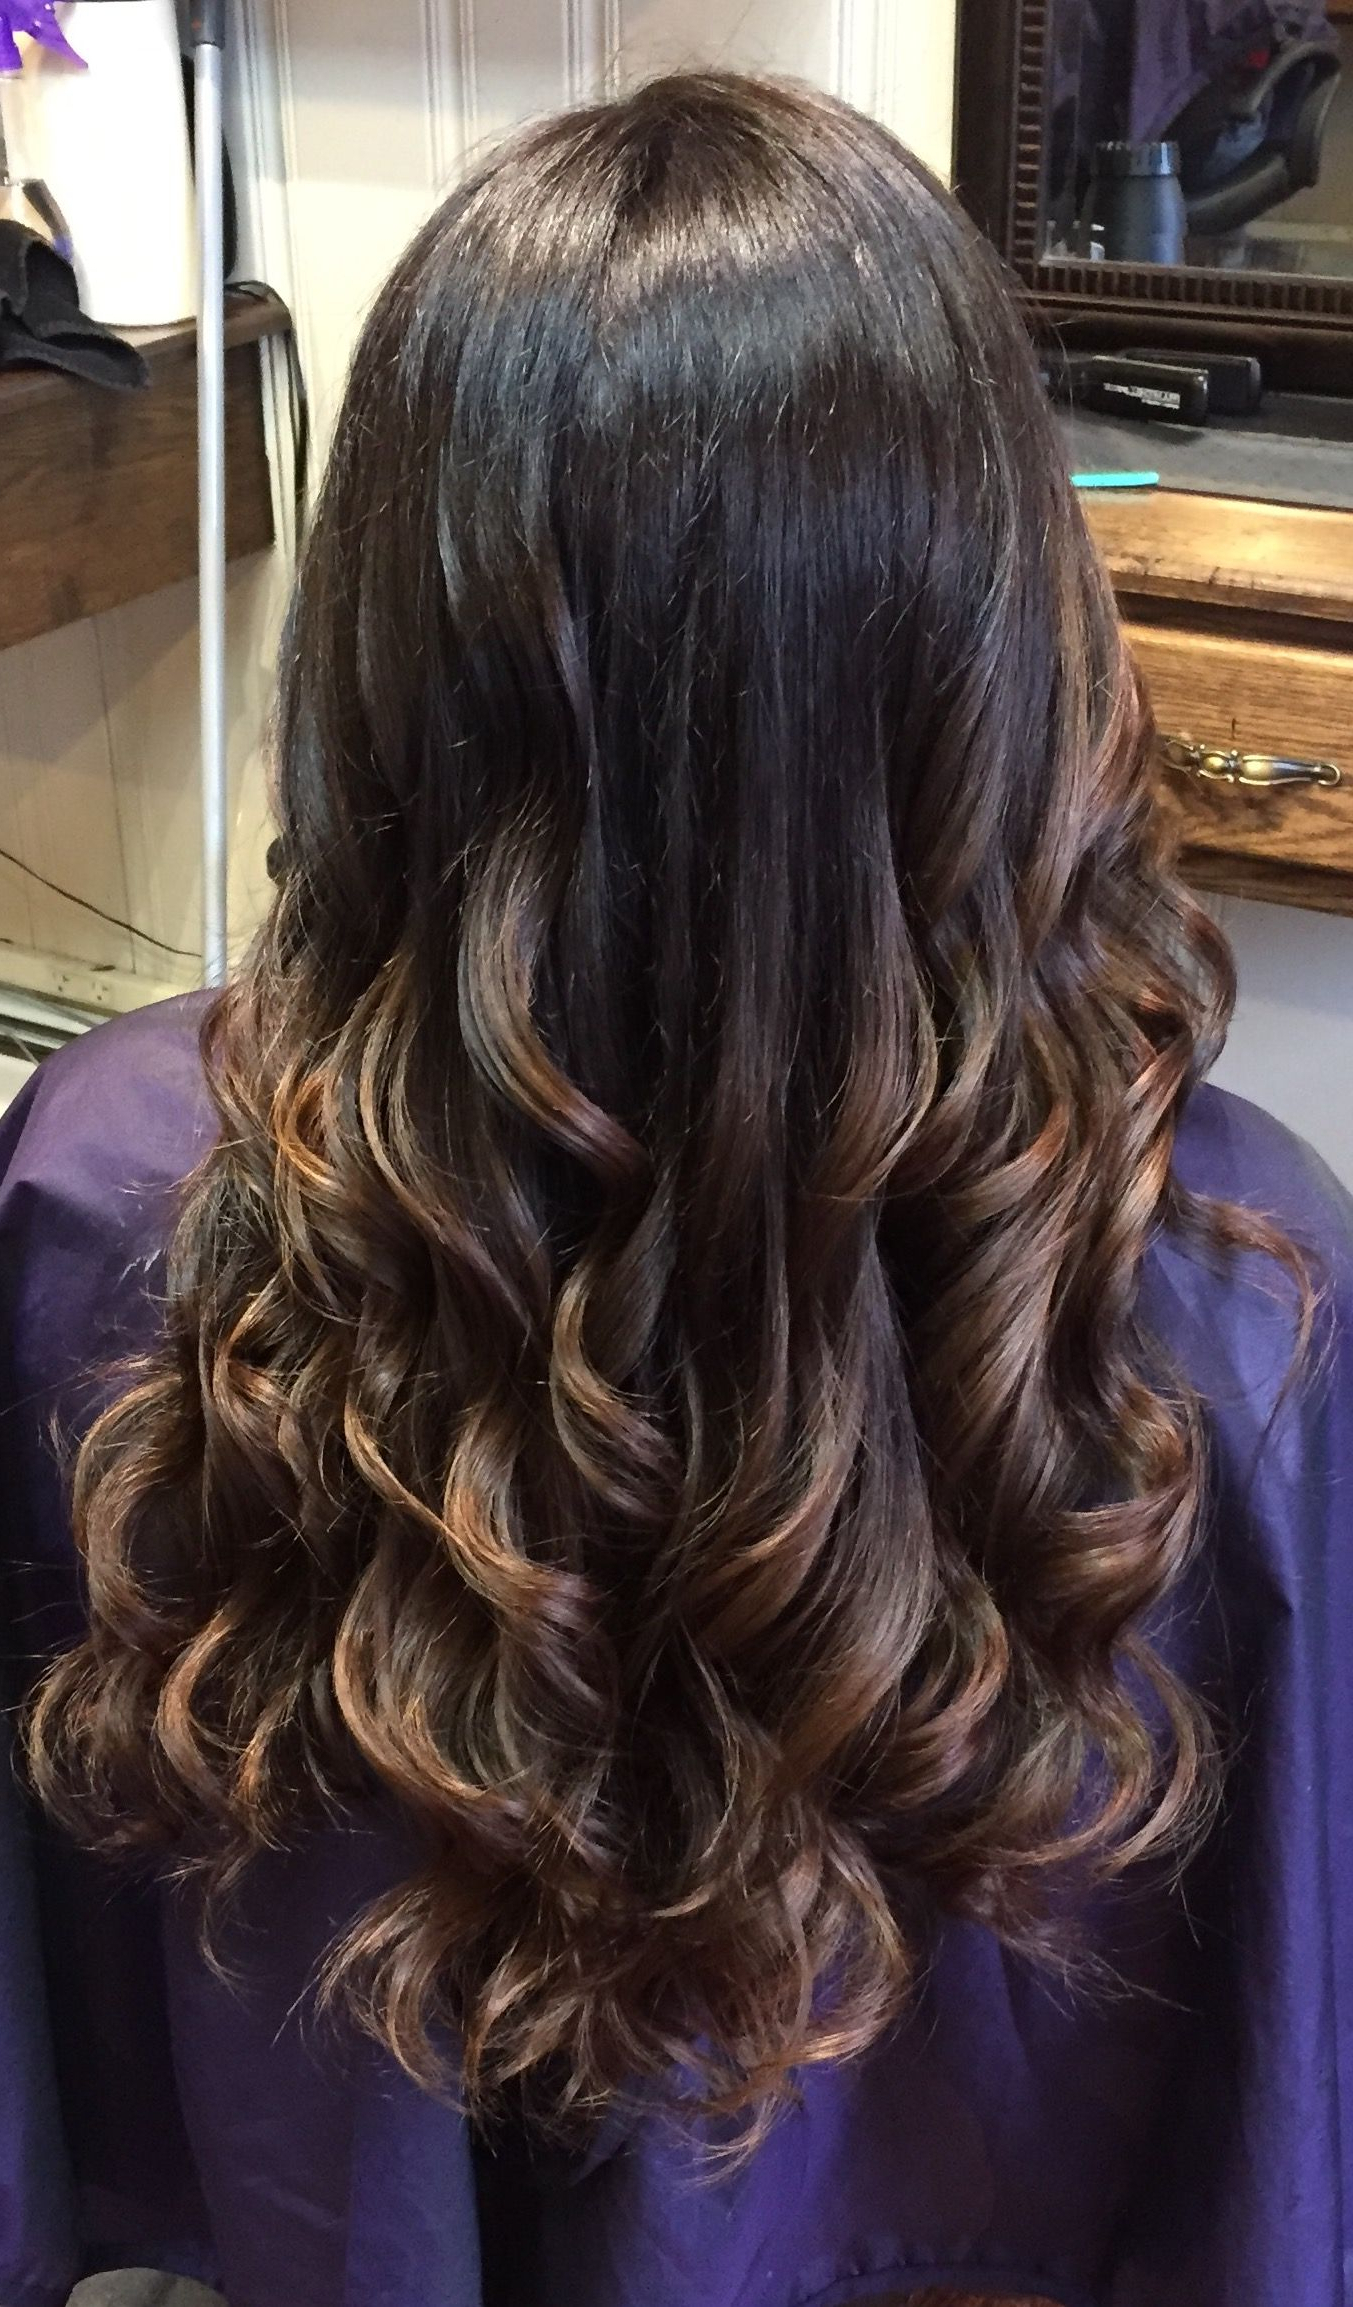 Hair I've (View 5 of 20)